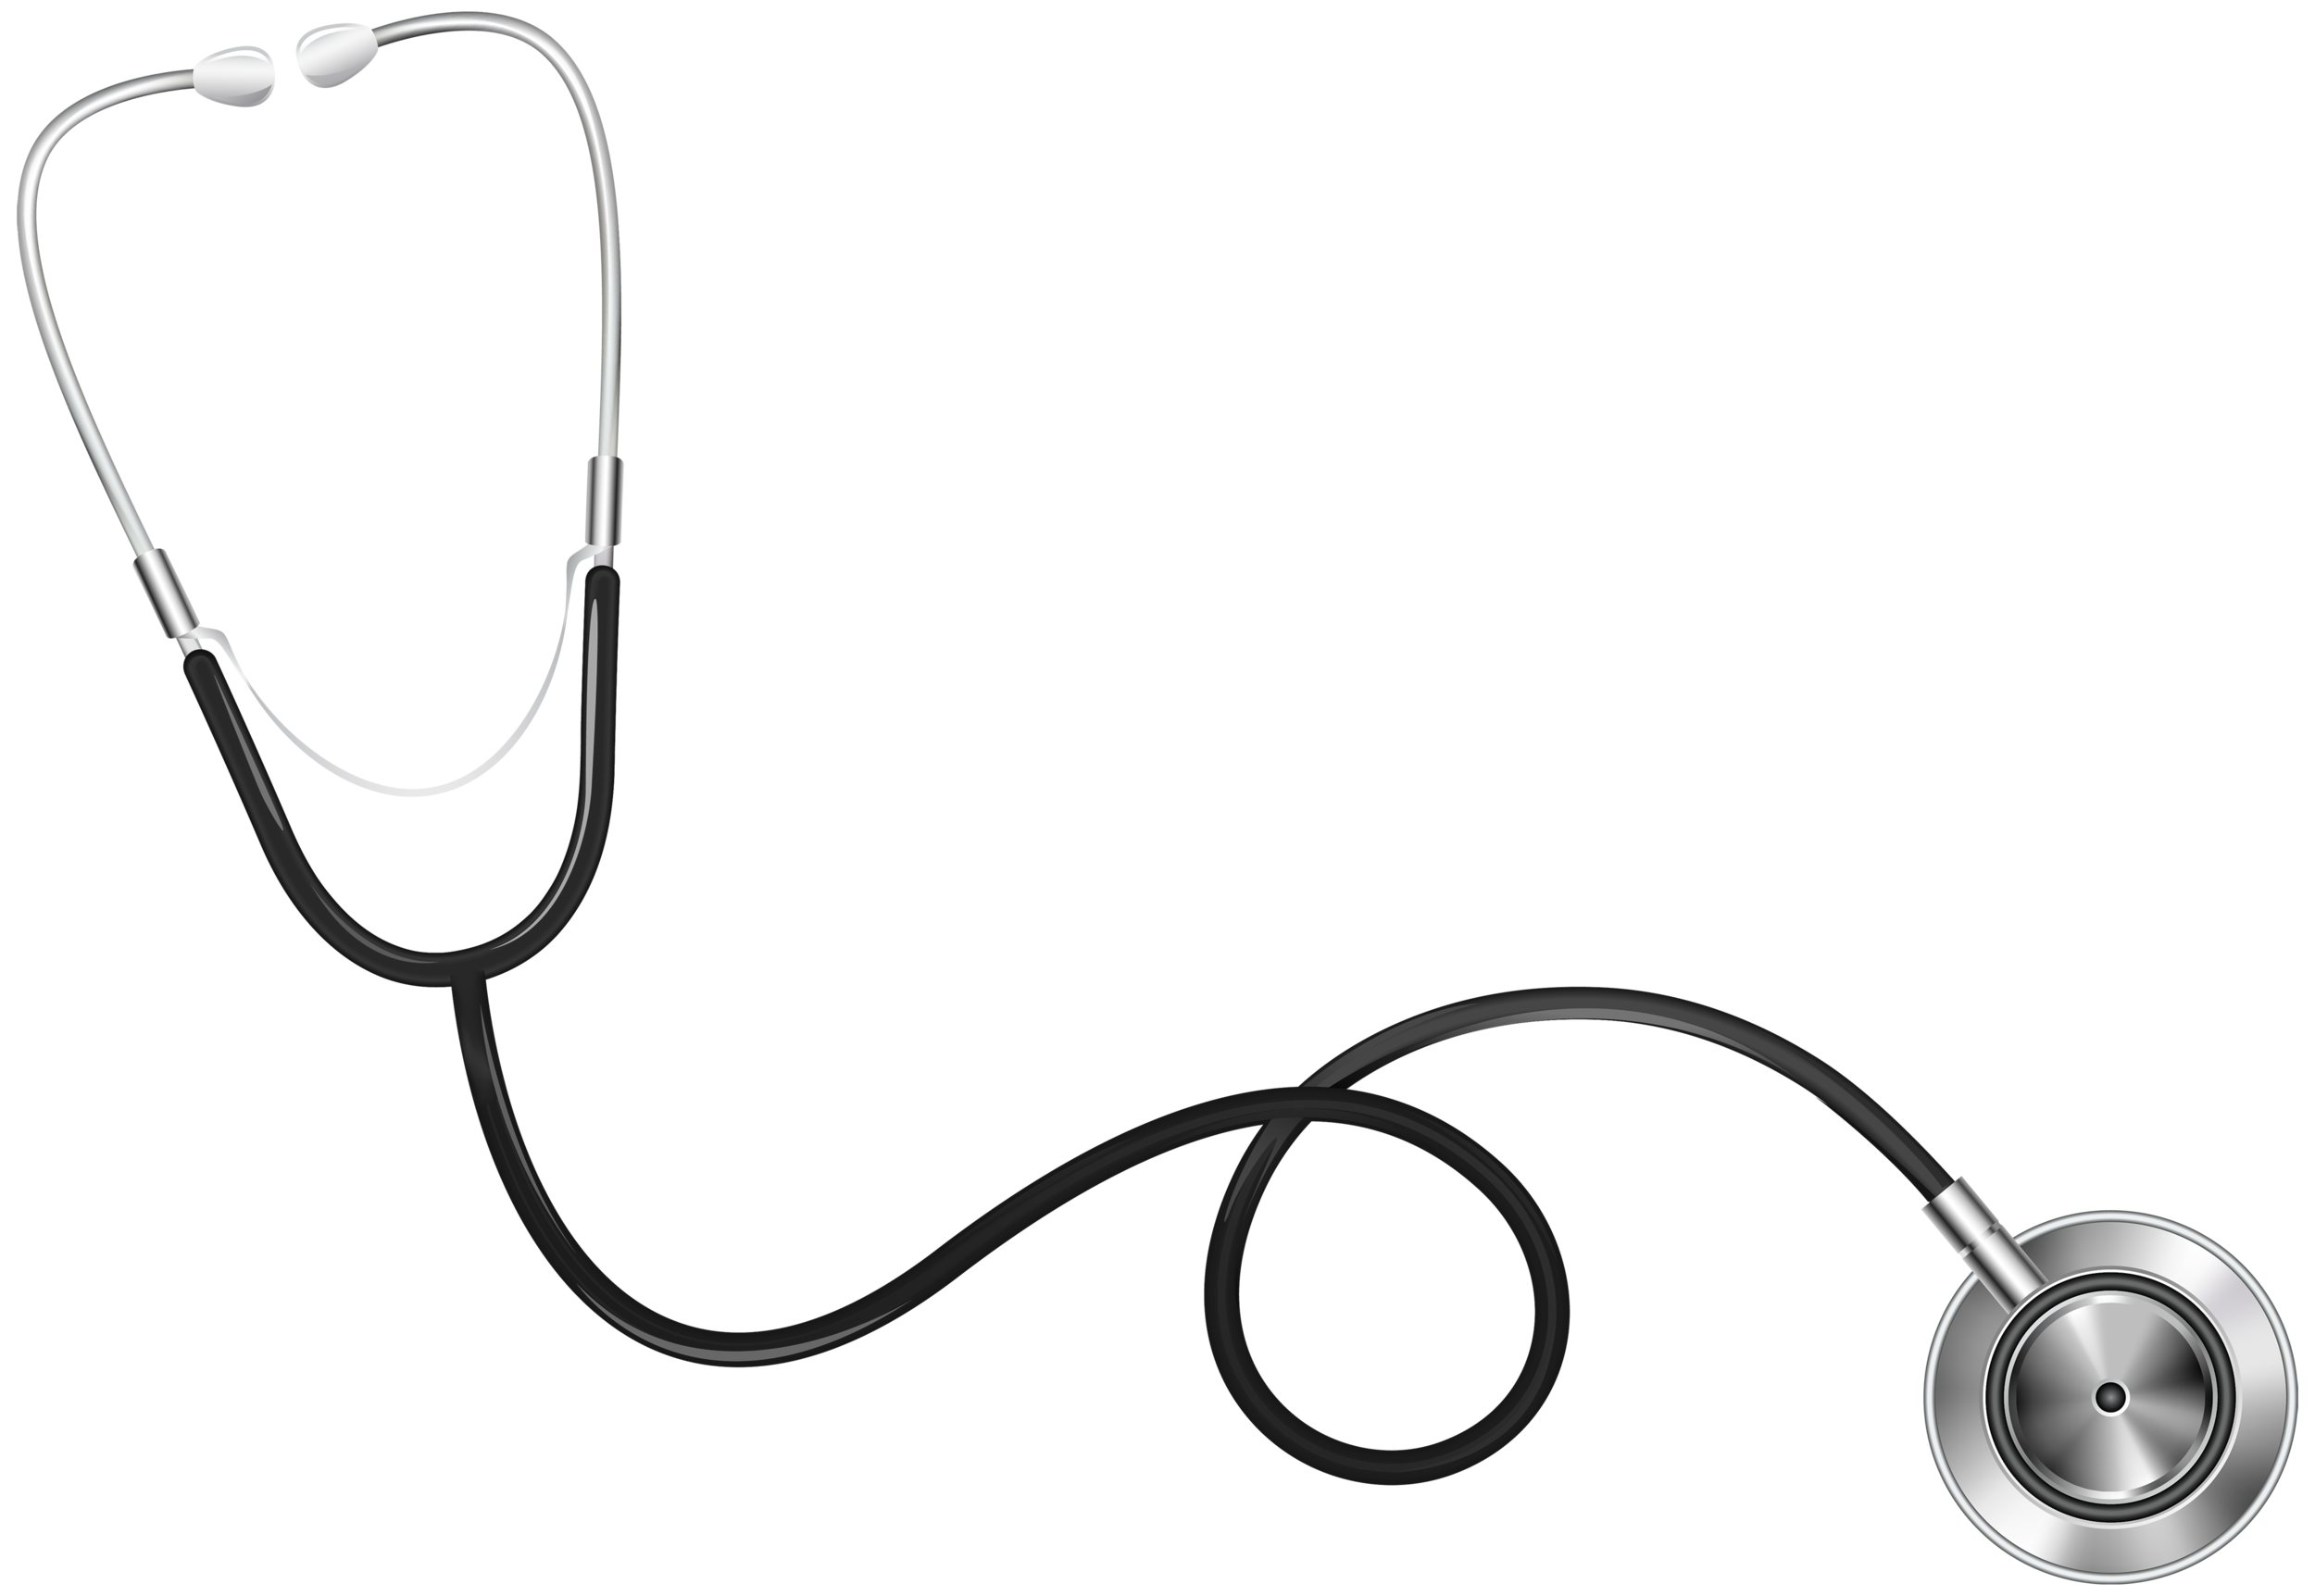 Stethoscope_PNG_Clipart-363.png